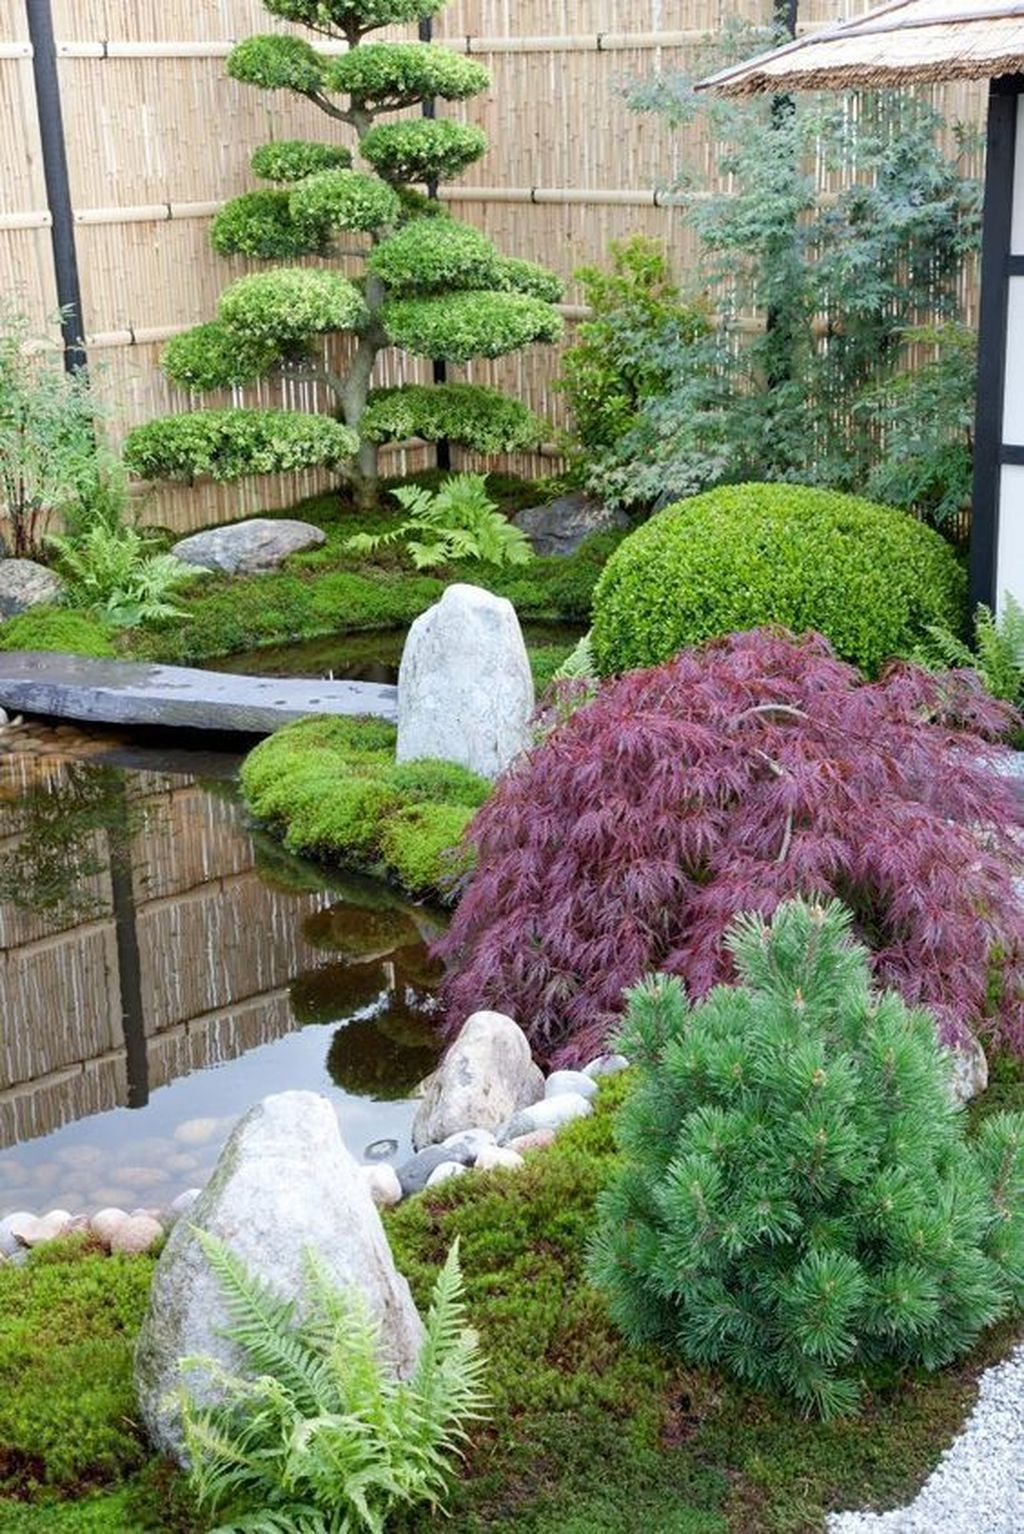 Can You Make a Chinese Garden in Your Backyard? - Three ...